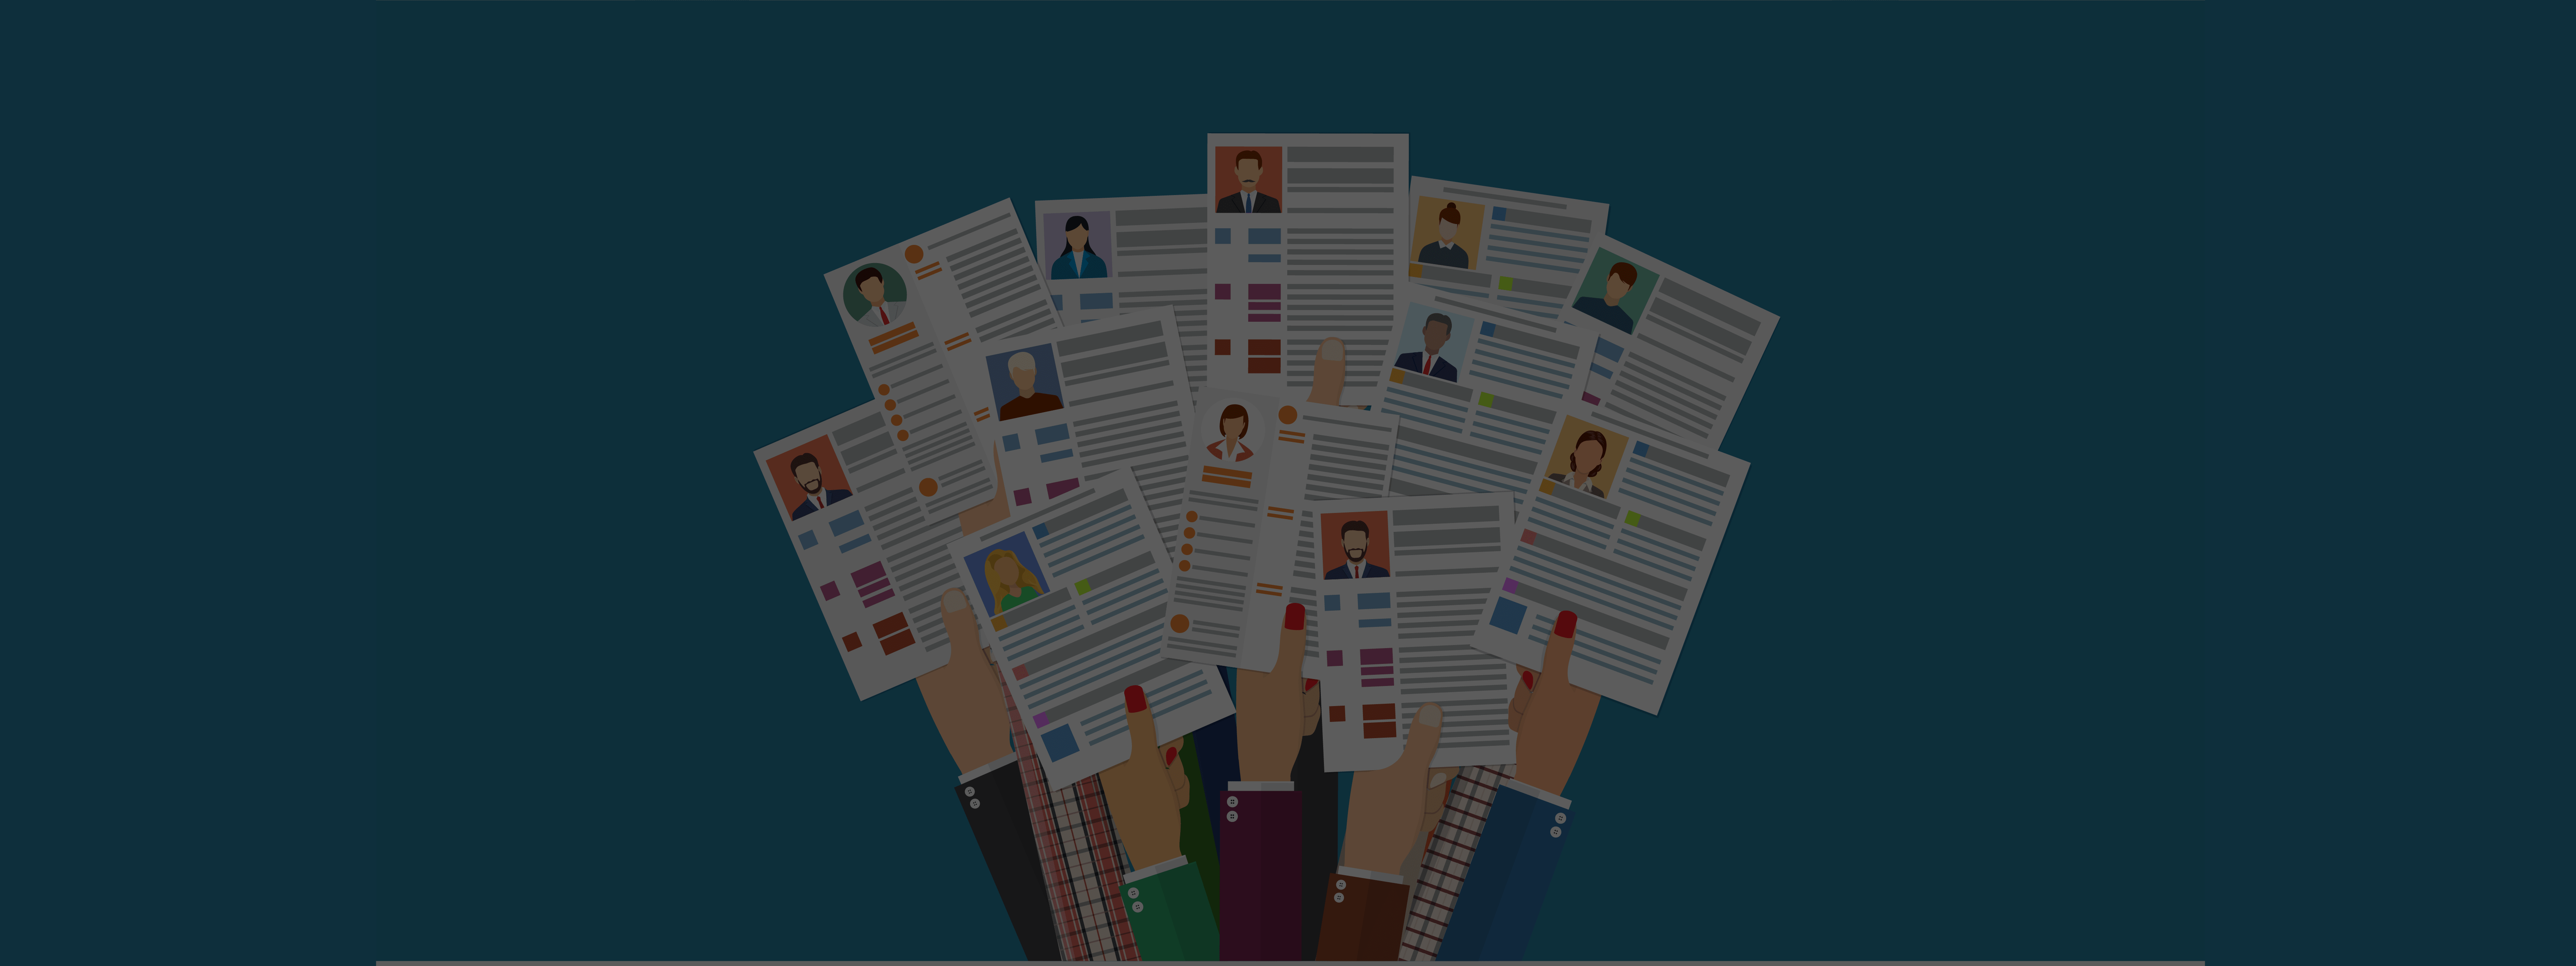 28 marketing pros & hiring managers reveal the most important skills for marketers to add to their resumes